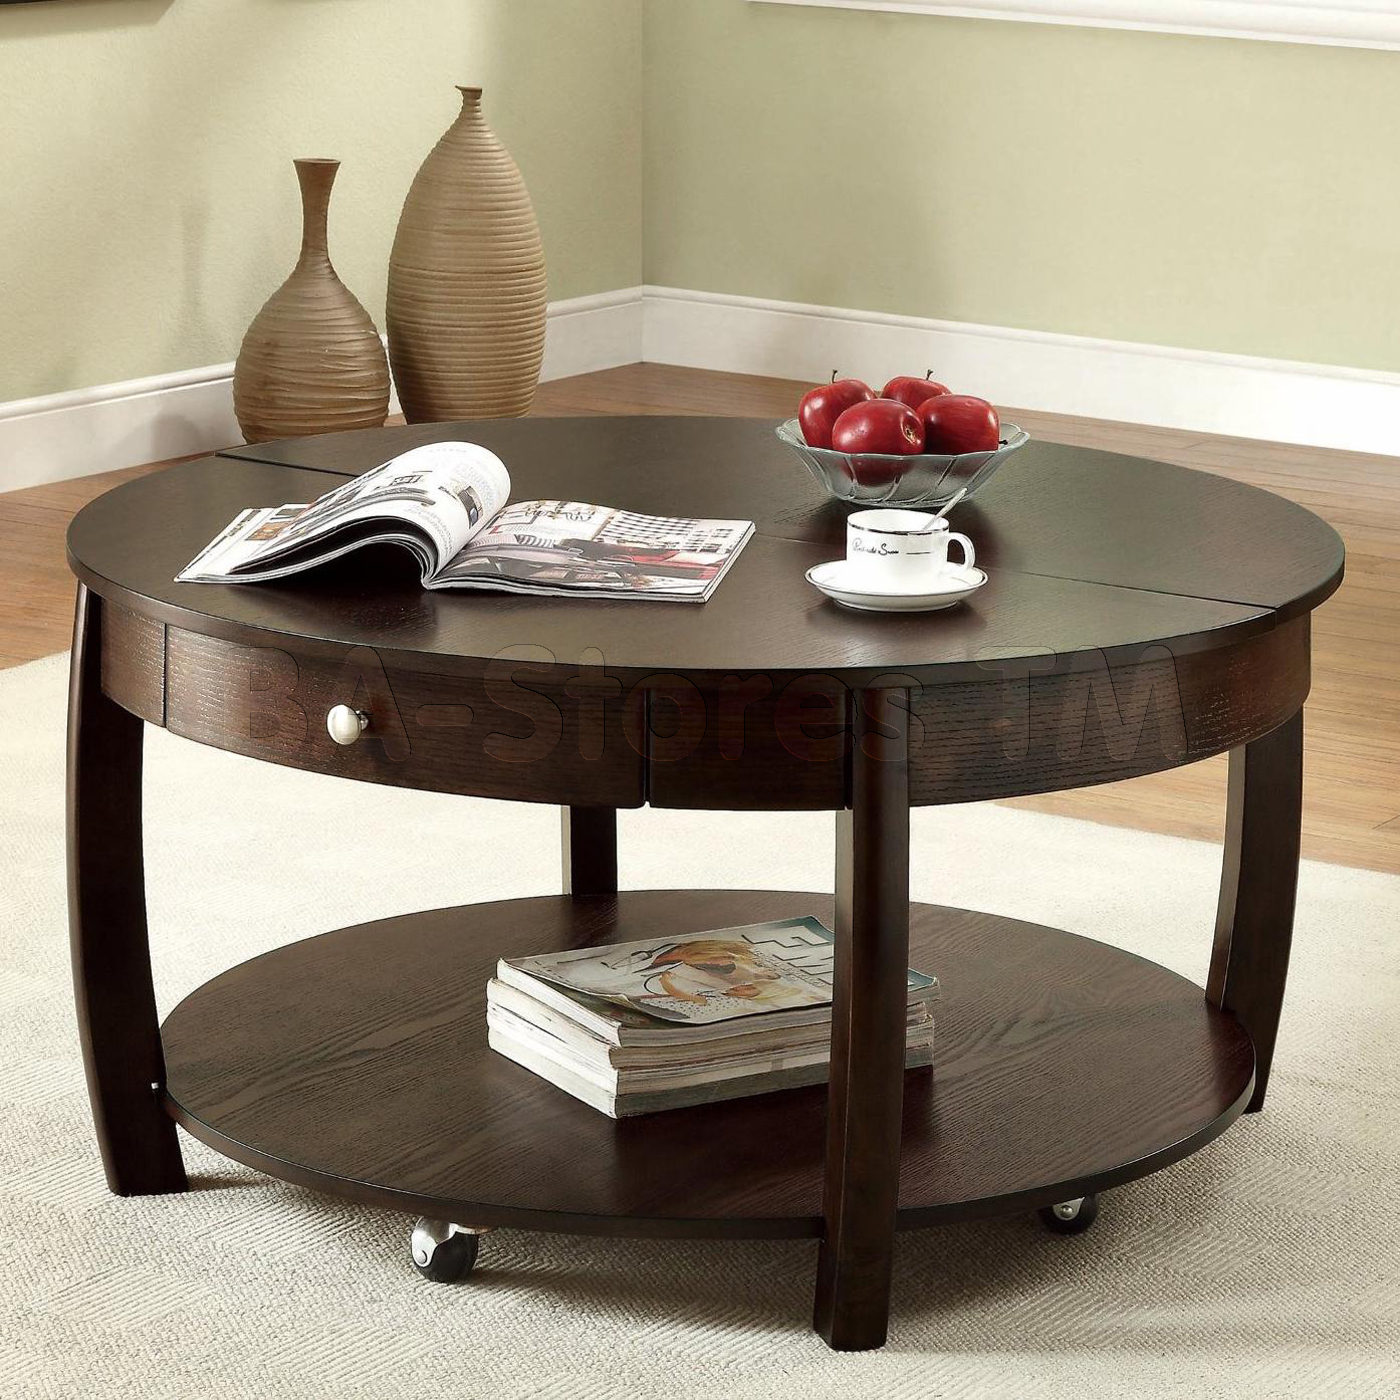 coffee tables ideas furniture row living room table set sto custom sliding floor ceiling slanted fitting mess hassle flat packs design install affordable and end laura ashley